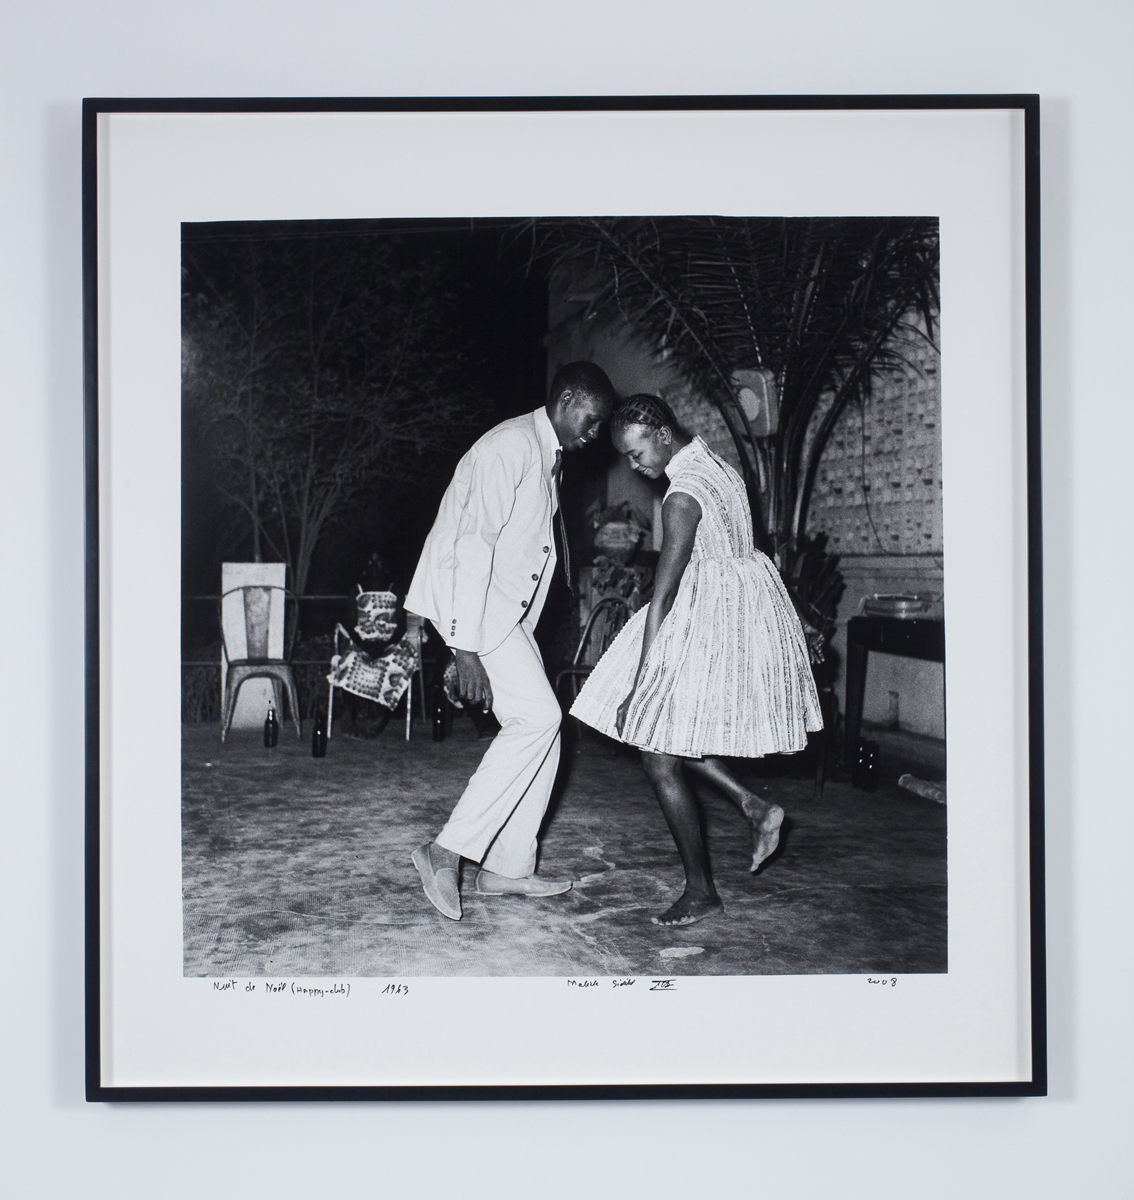 Malick Sidibé, Nuit de Nöel (Happy Club), 1963, Courtesy of the artist and Jack Shainman Gallery, NY